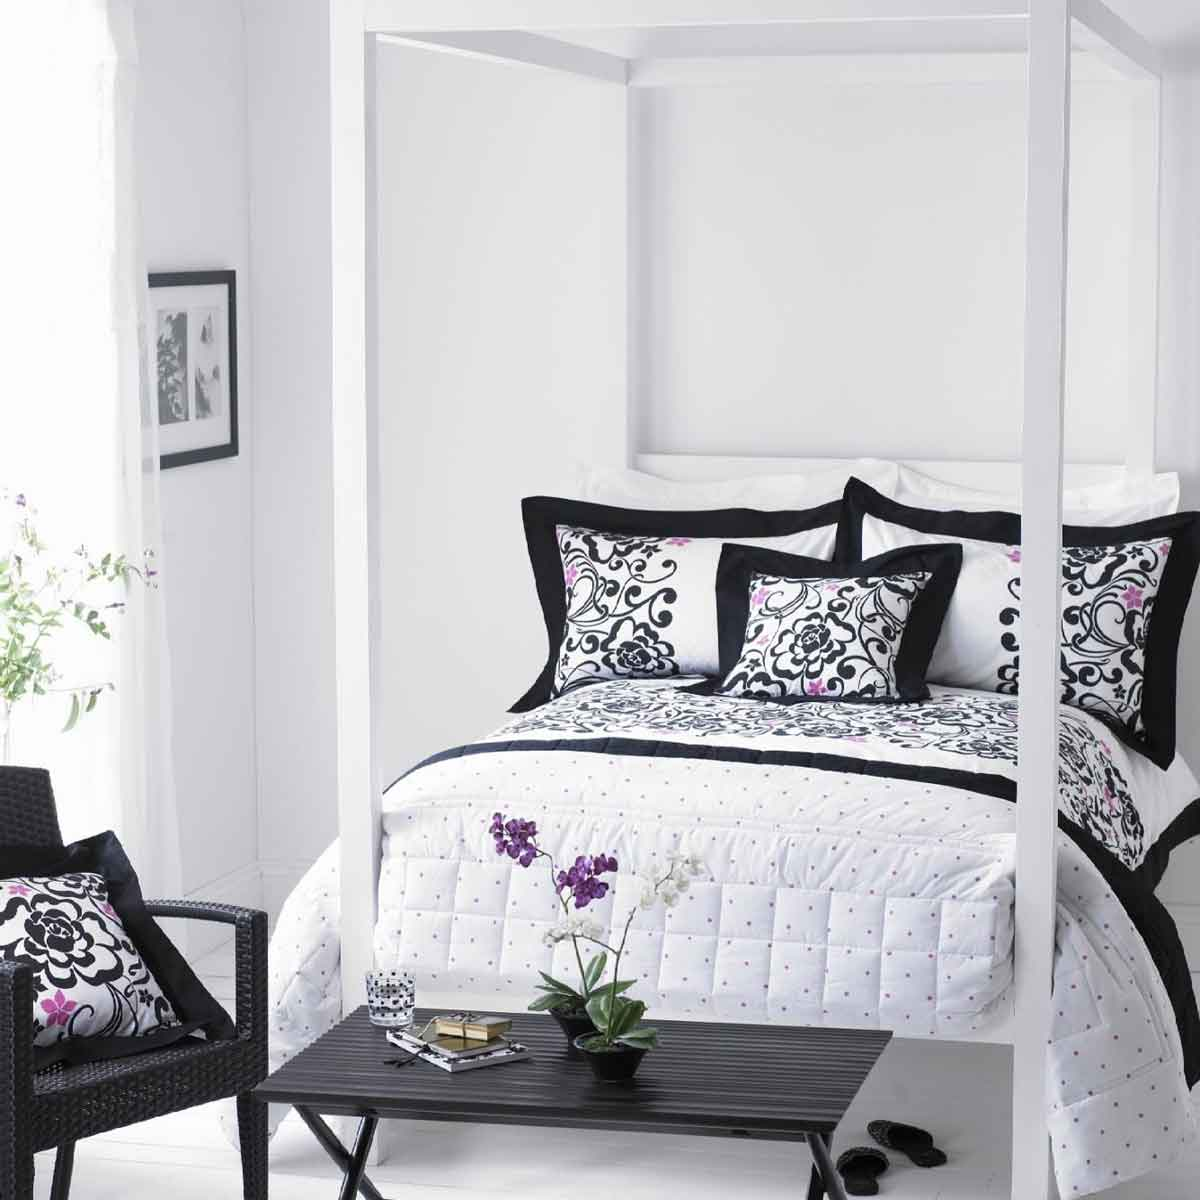 Bedroom Decor Design Ideas. Black And White Bedroom Decorating Ideas Decor  Design